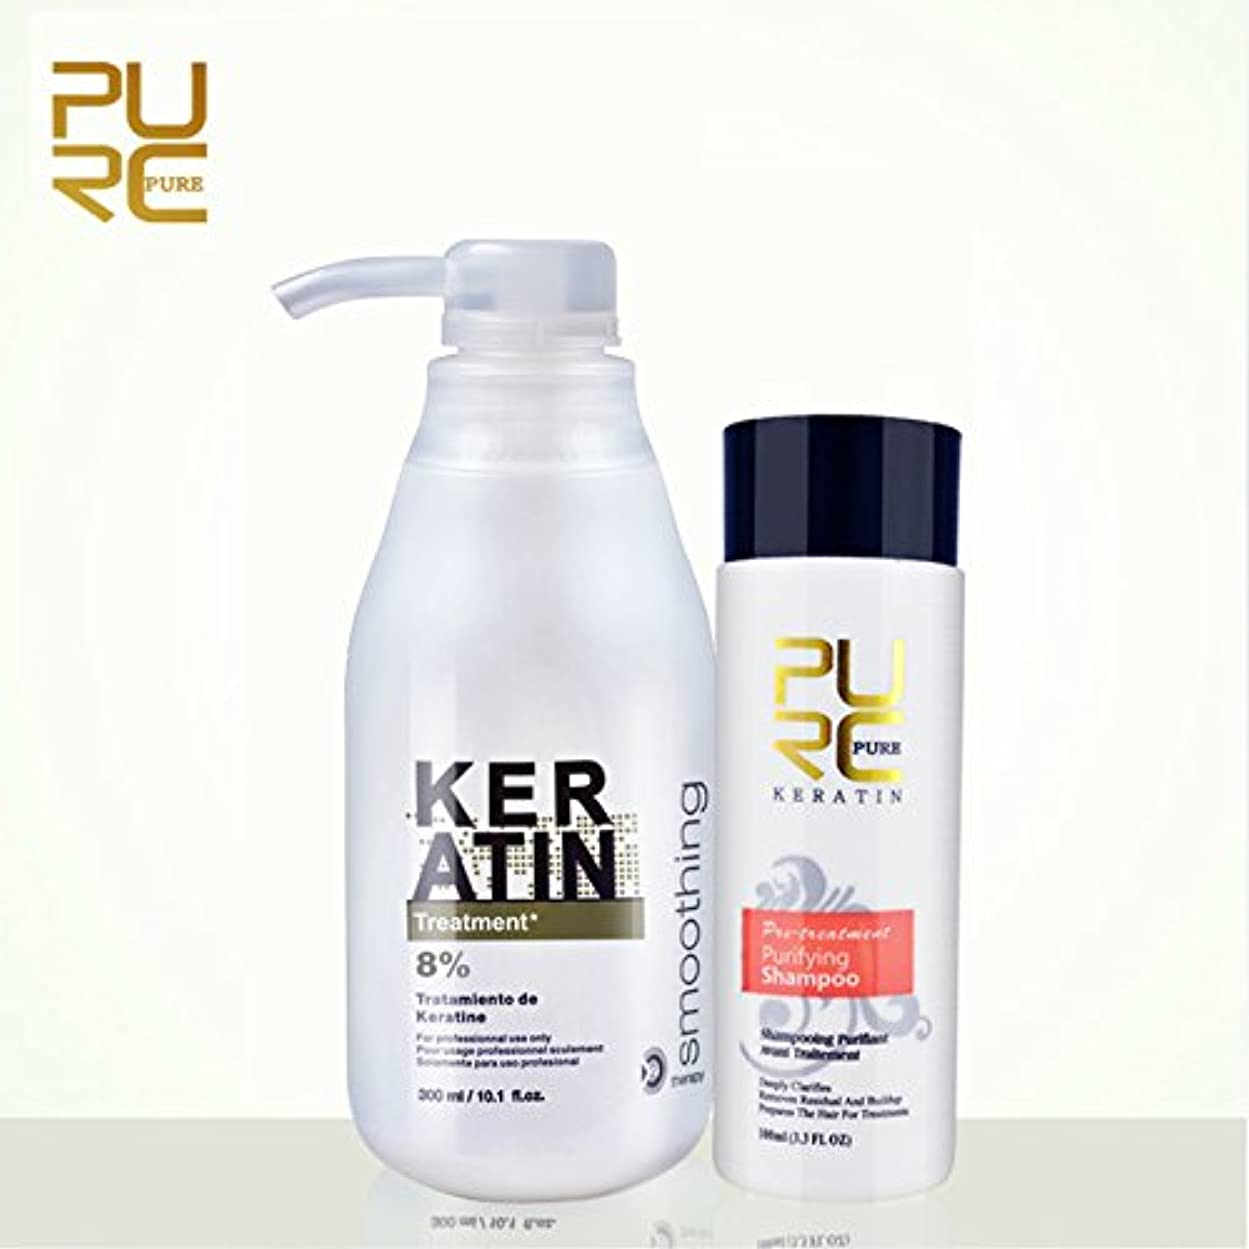 レース腐敗近々Set of 2 - Purc 8% Brazilian Keratin Treatment For Strong Hair + 300Ml Purifying Shampoo